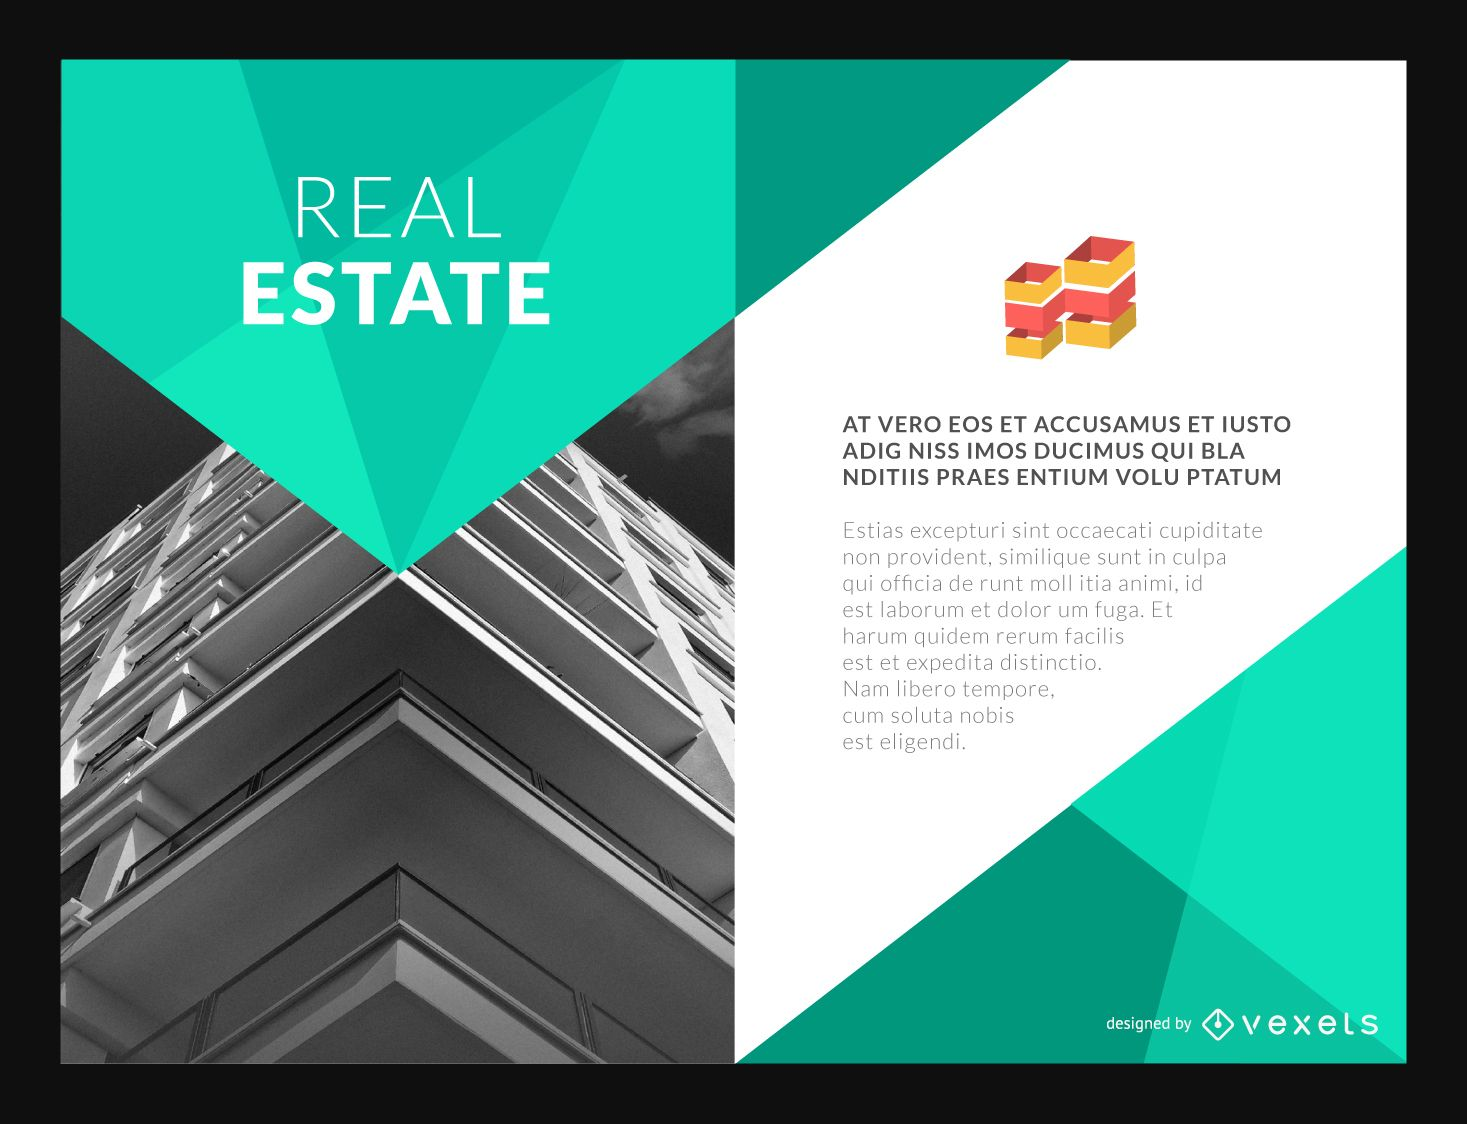 945187bb1904125b1773a9d9bdb9d8e8-real-estate-flyer-mockup-template.jpg